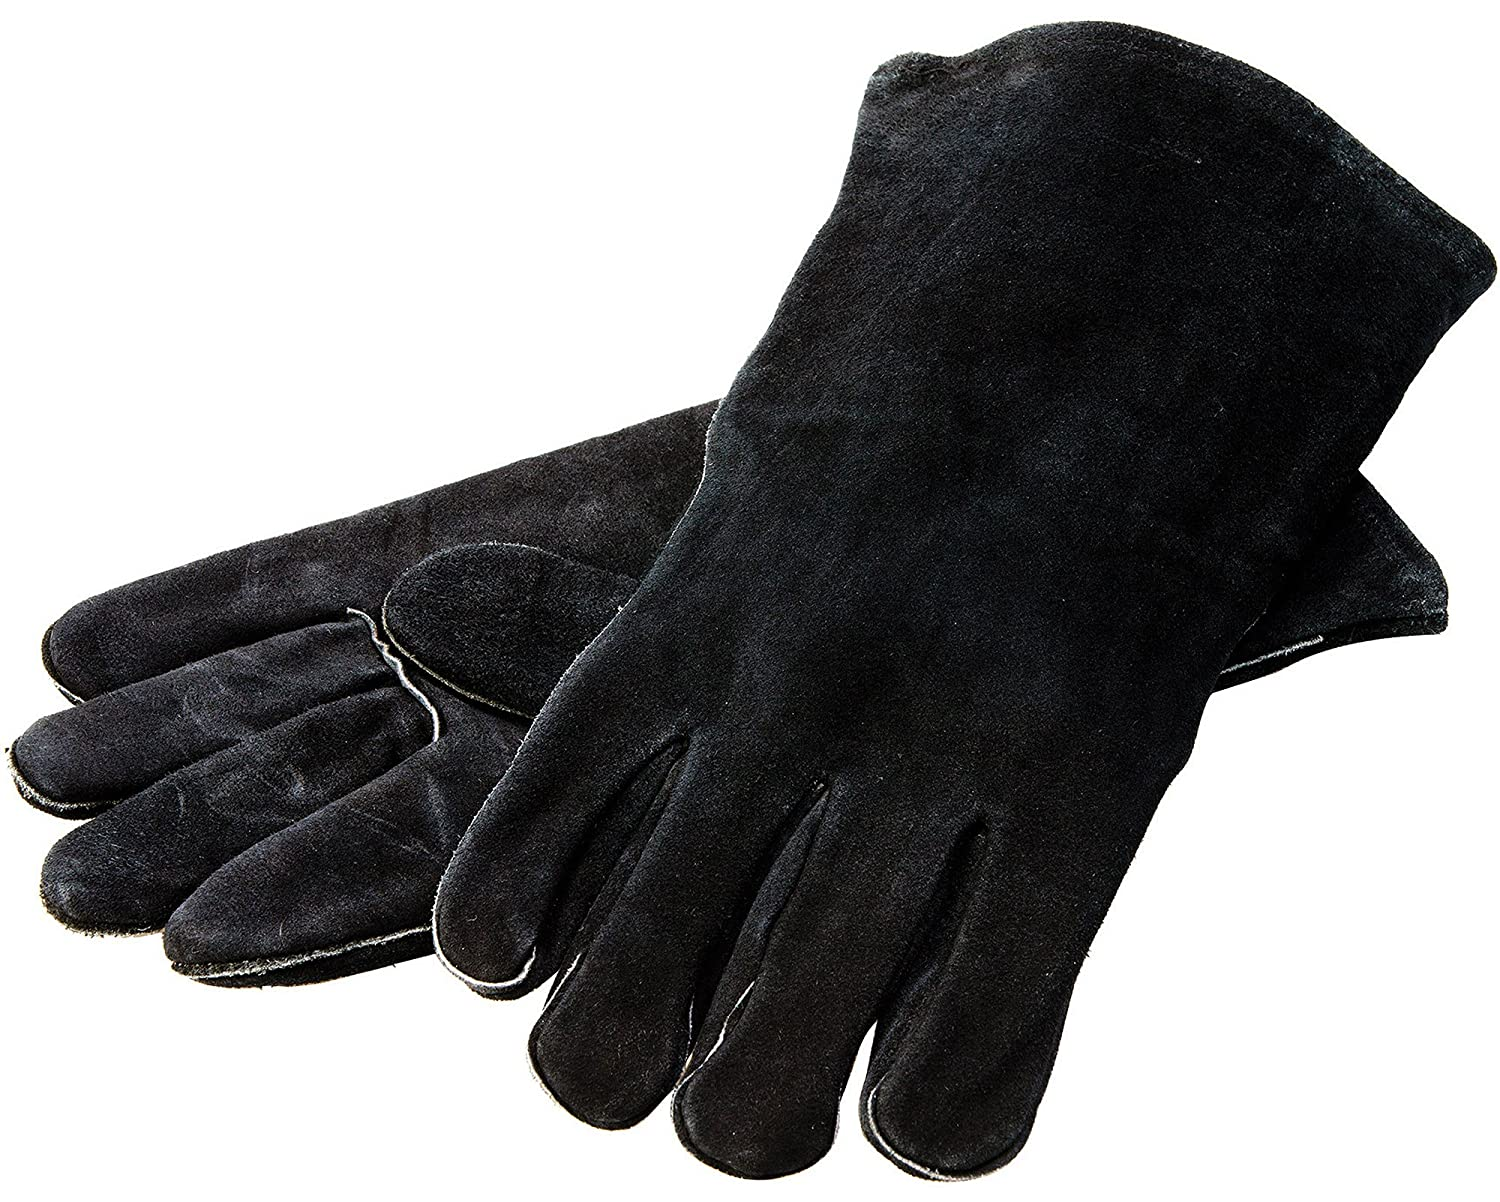 "Lodge 14.5"" Leather Outdoor CookingGloves -Heat Resistant Gloves for Cast Iron Cooking"